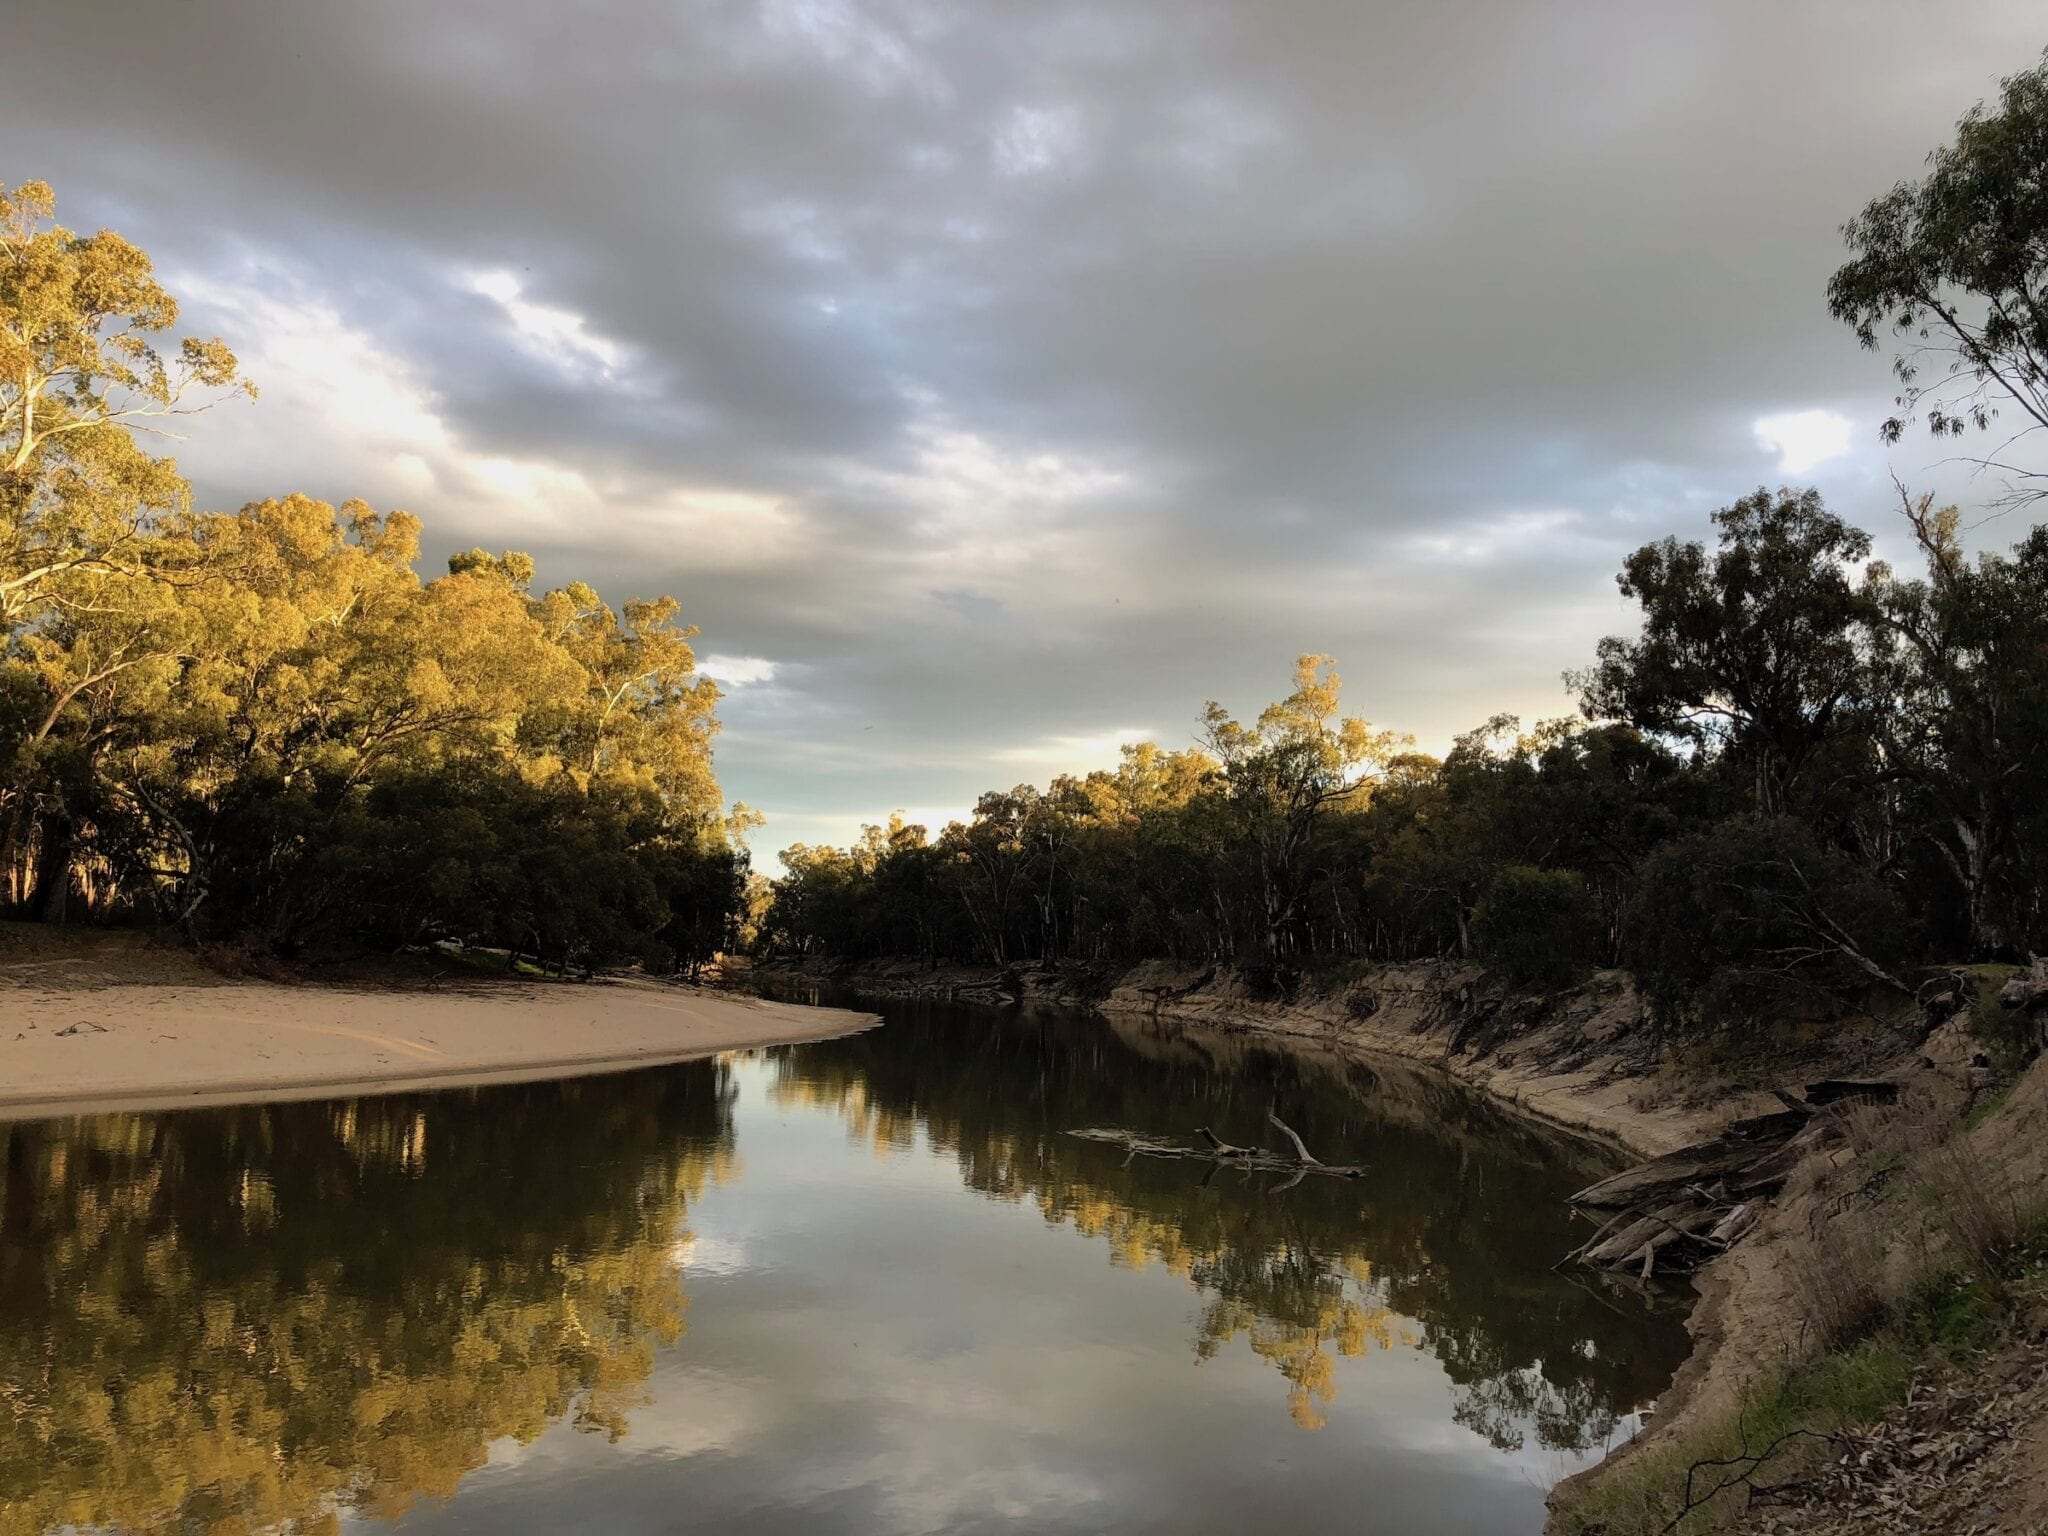 Camped on the Murrumbidgee River, Murrumbidgee Valley Regional Park.